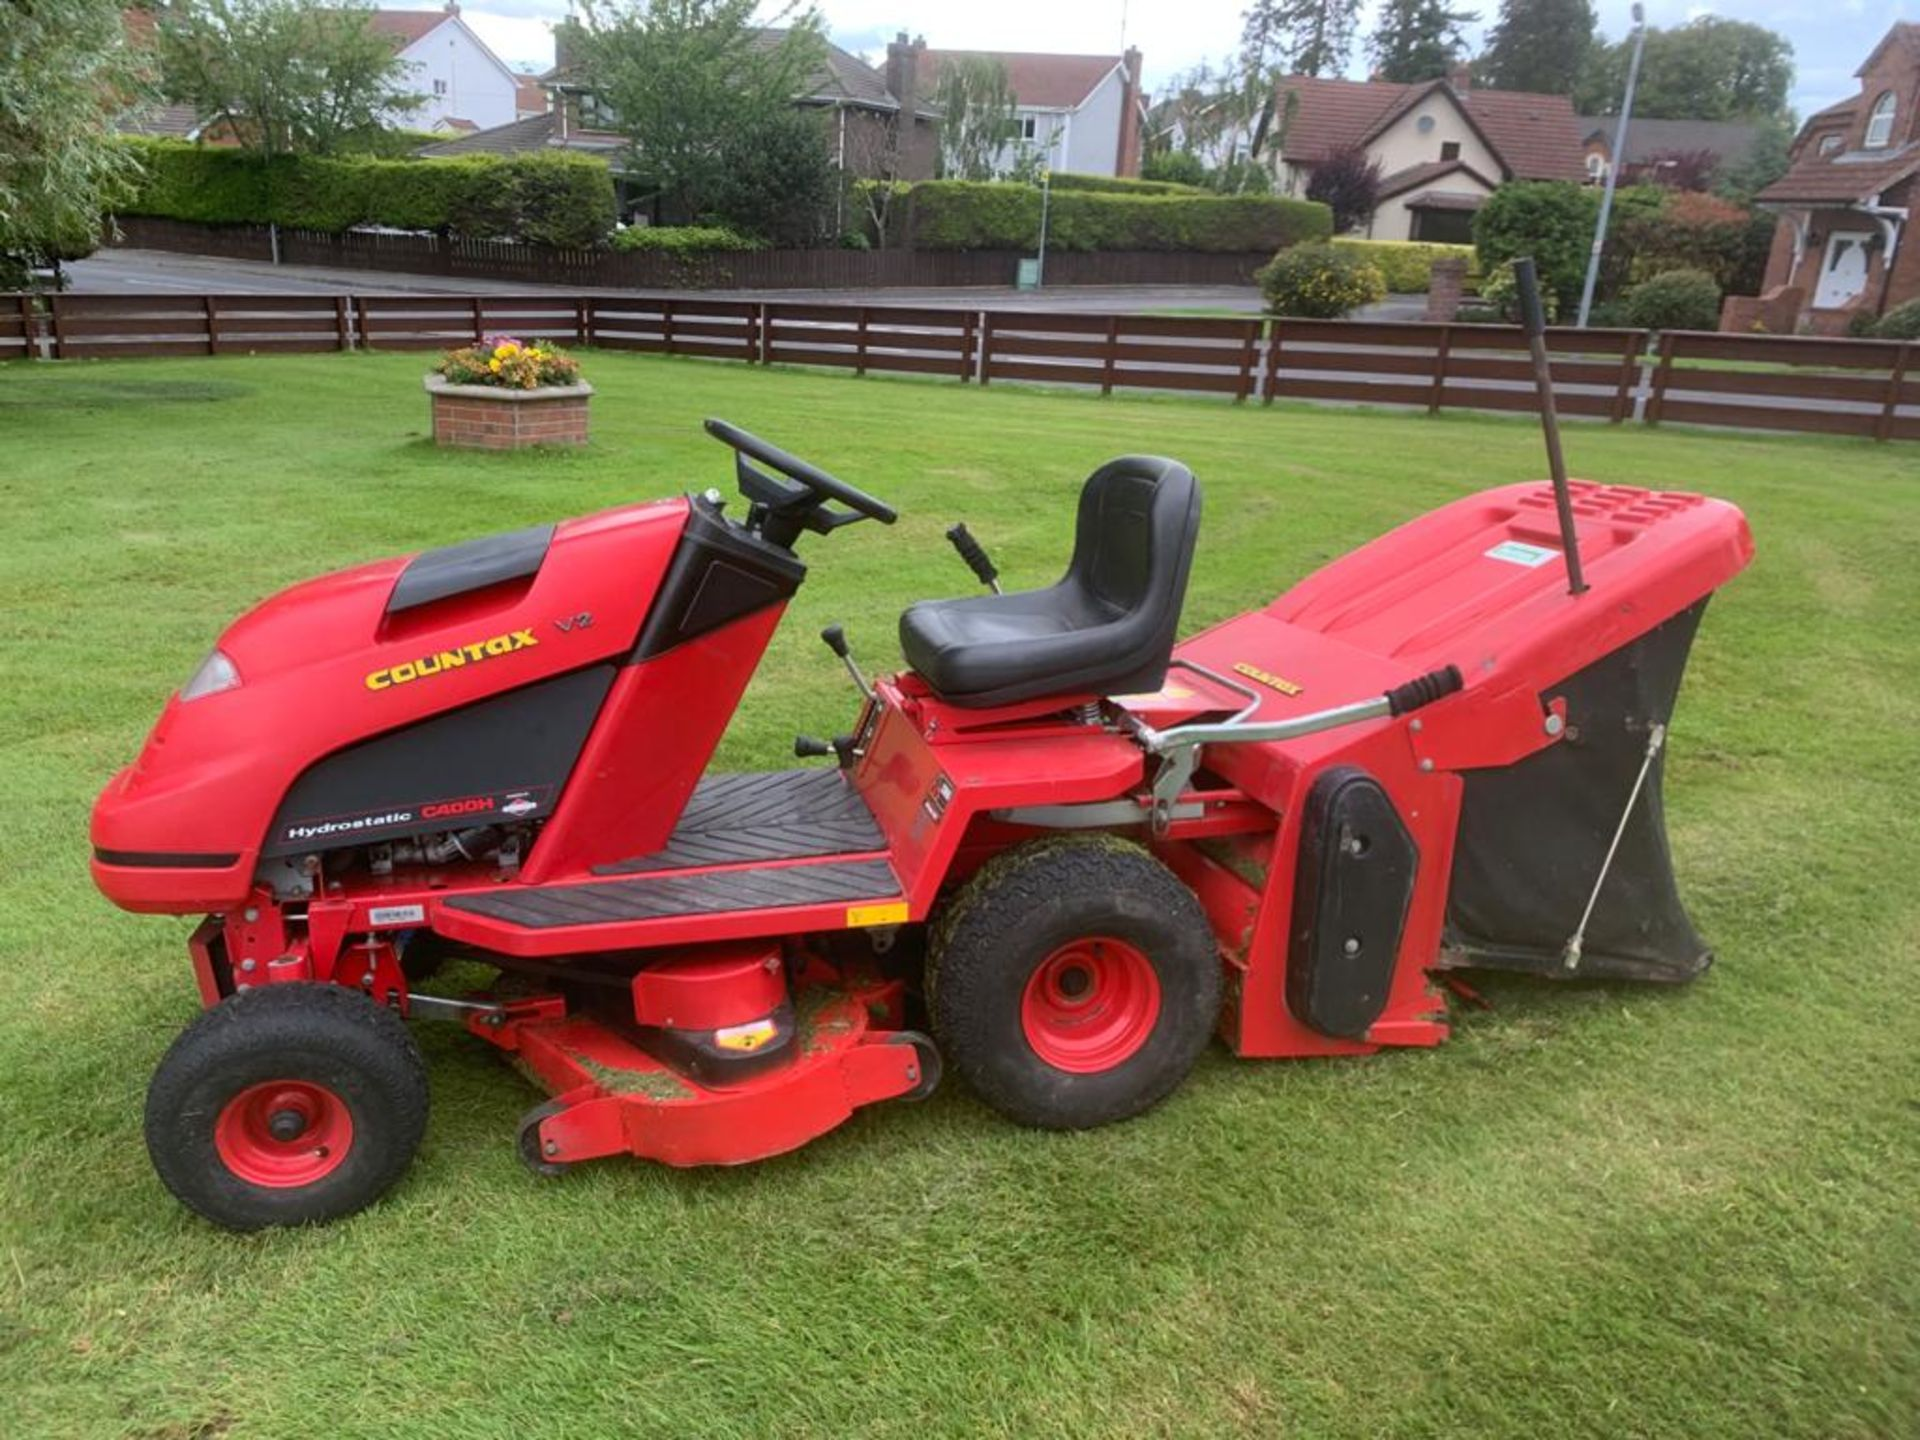 COUNTAX C400H HYDROSTATIC PETROL RIDE ON LAWN MOWER WITH SWEEPER *PLUS VAT* - Image 6 of 7